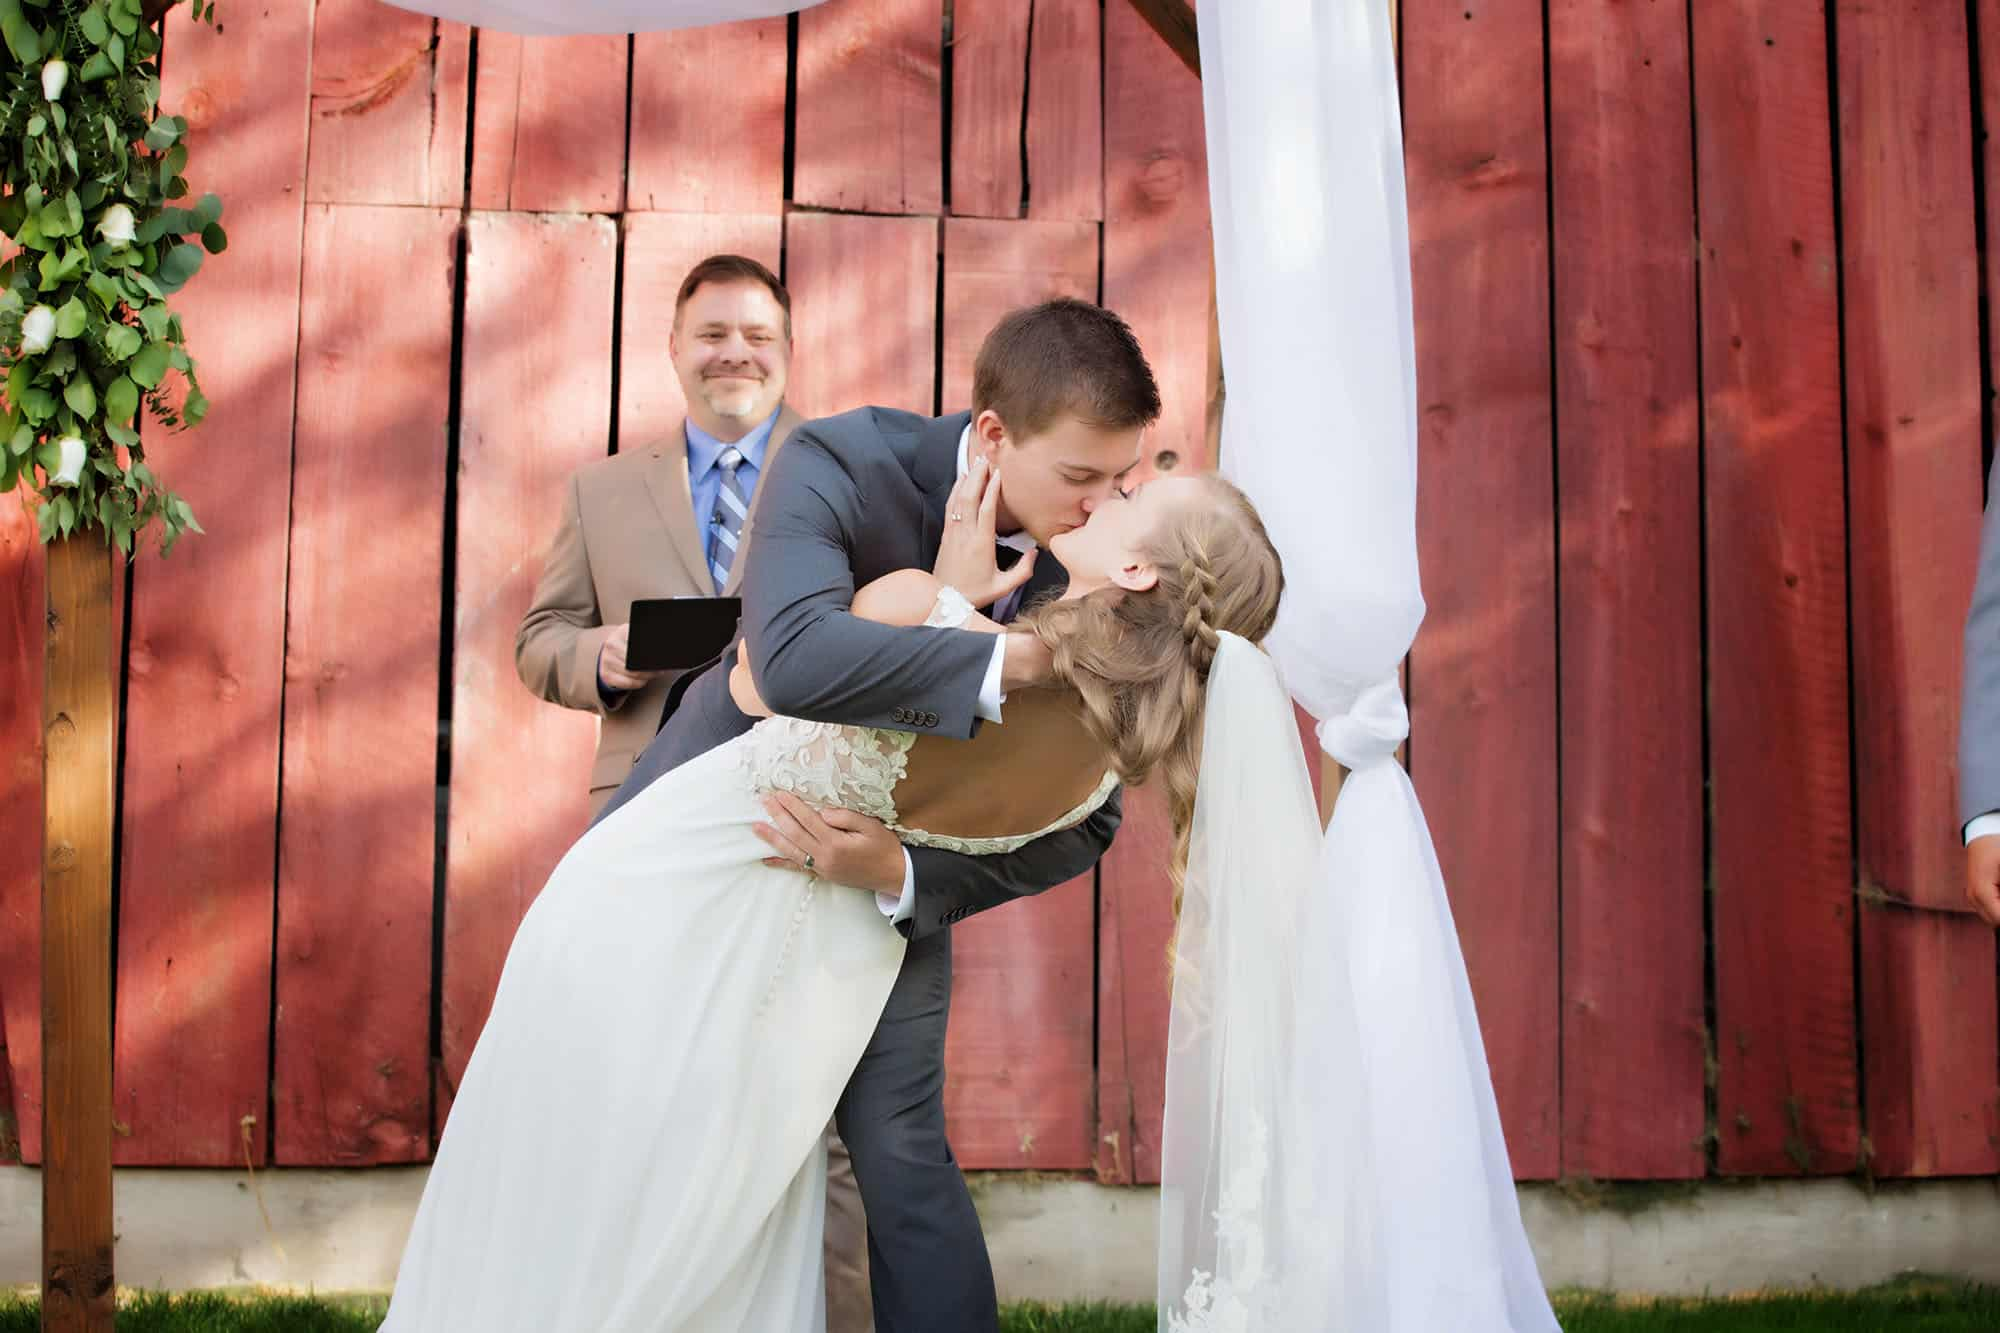 First Kiss at wedding in Hidden Springs.